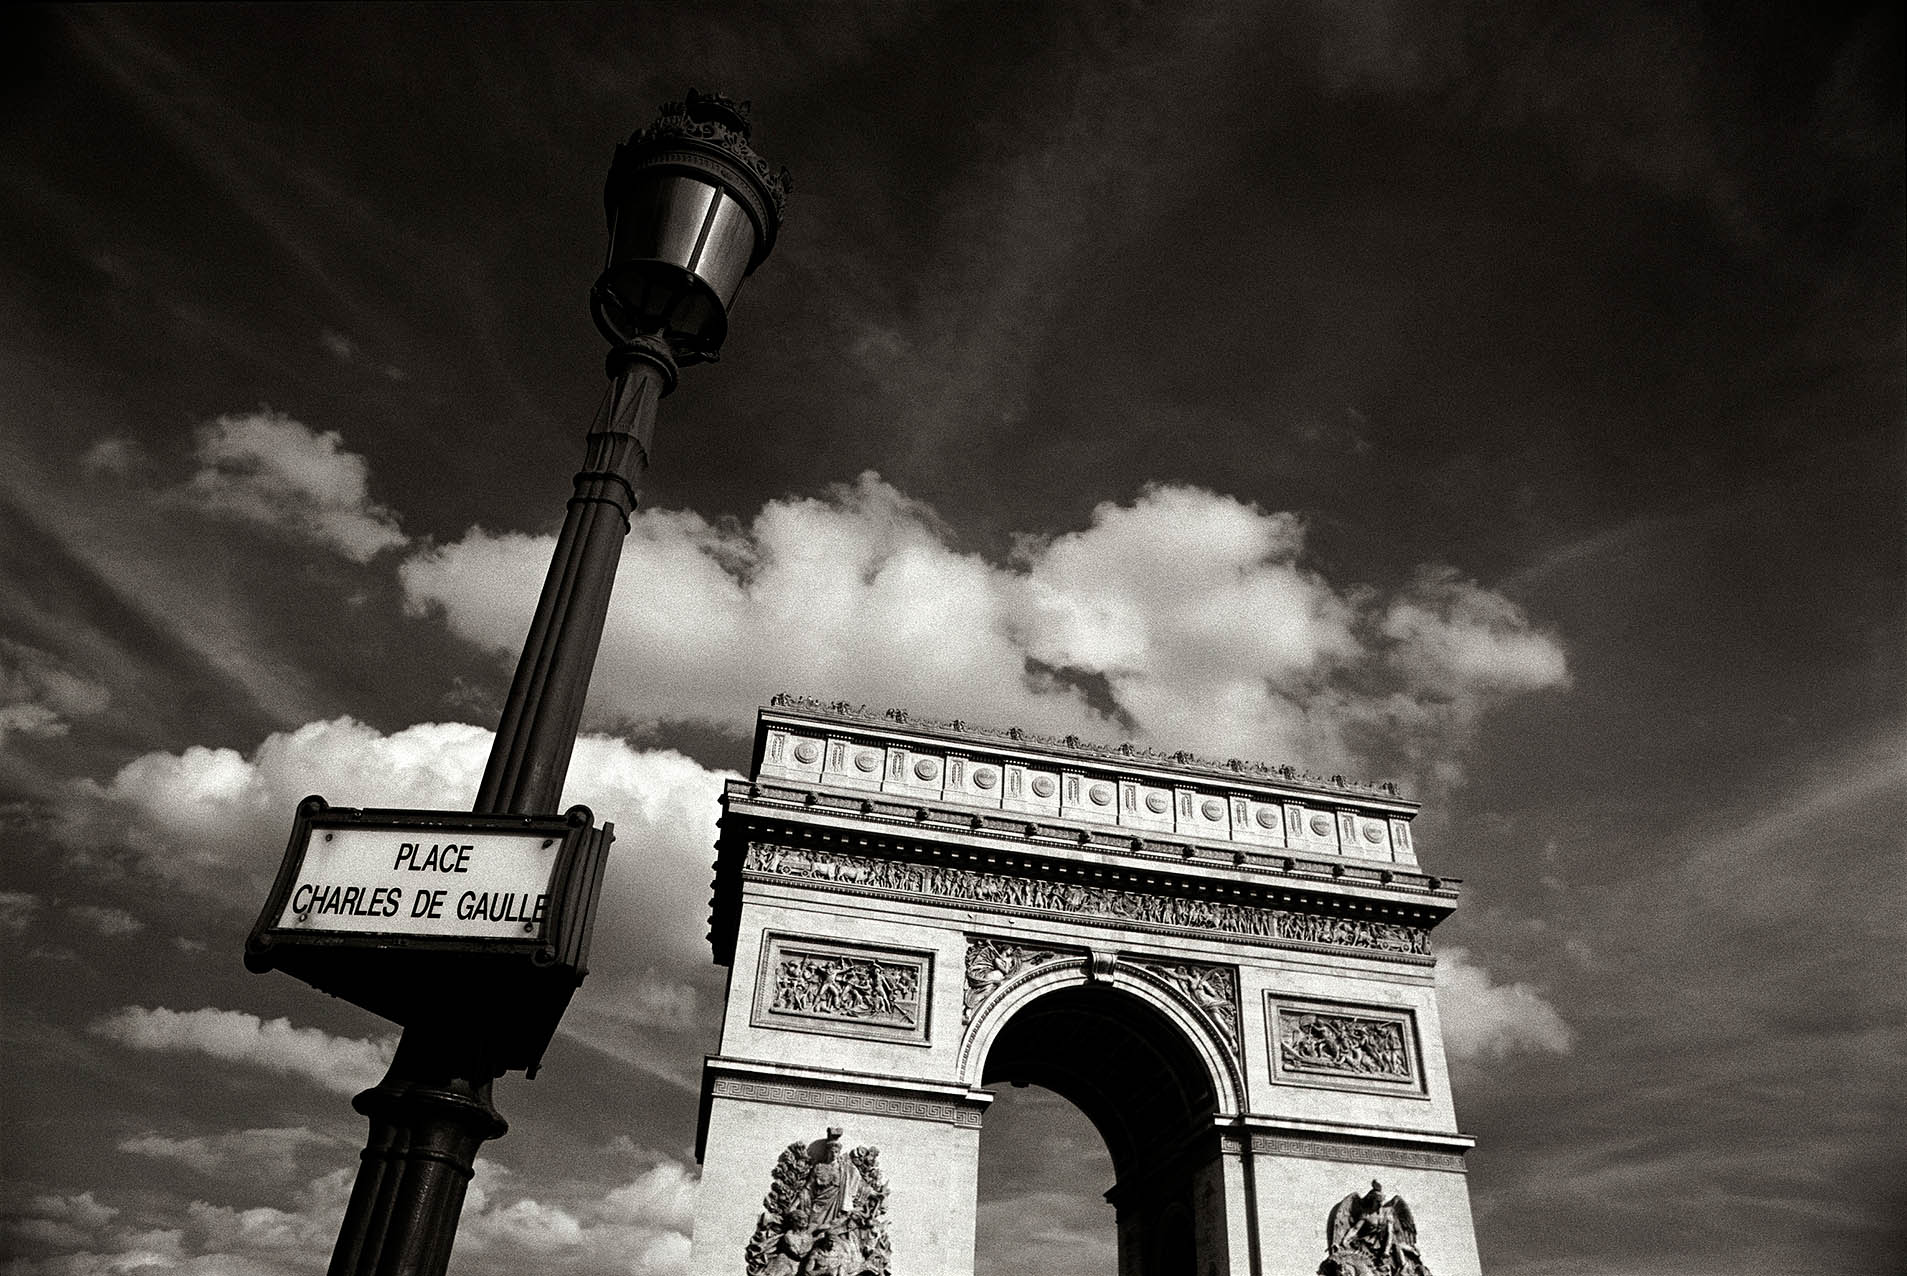 Paris-Arch sharp0.3 1276px 07